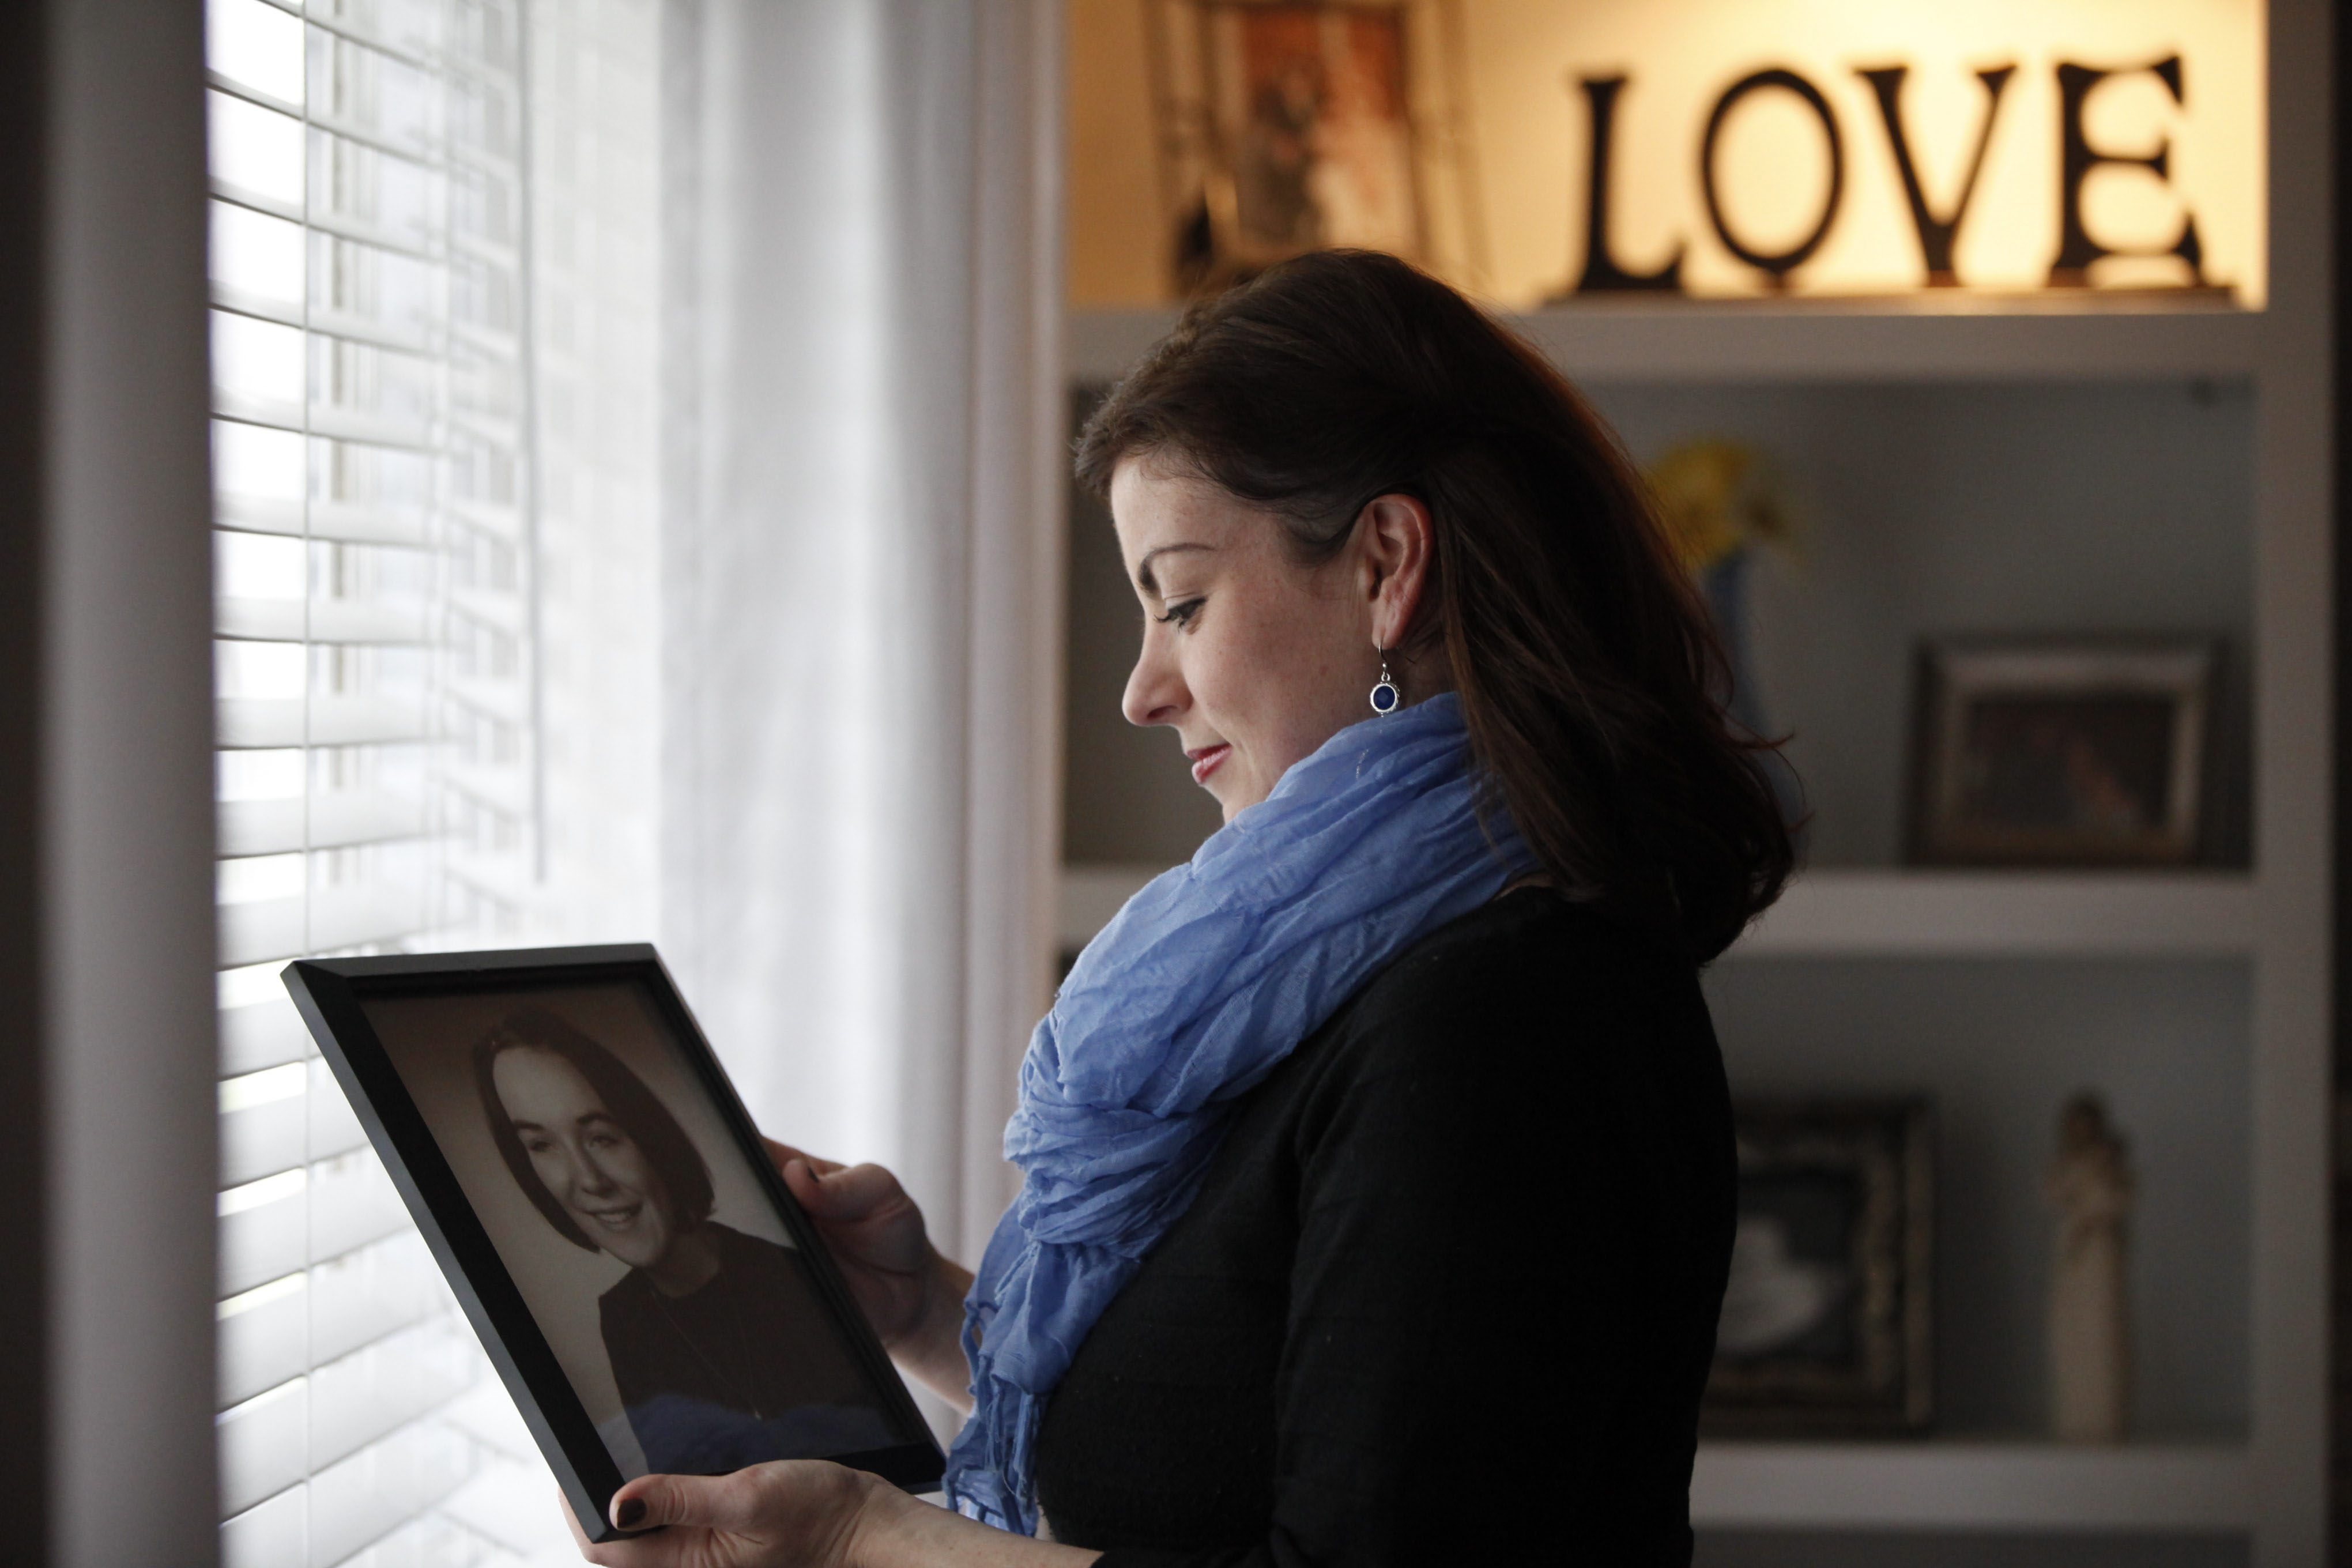 Tess Fraser, organizer of the Undy 5000, hopes the 5K race to be held Saturday in Delaware Park will raise awareness about colon cancer, which claimed the life of her mother, Barbara Hogg, in 2012. (Harry Scull Jr./Buffalo News)